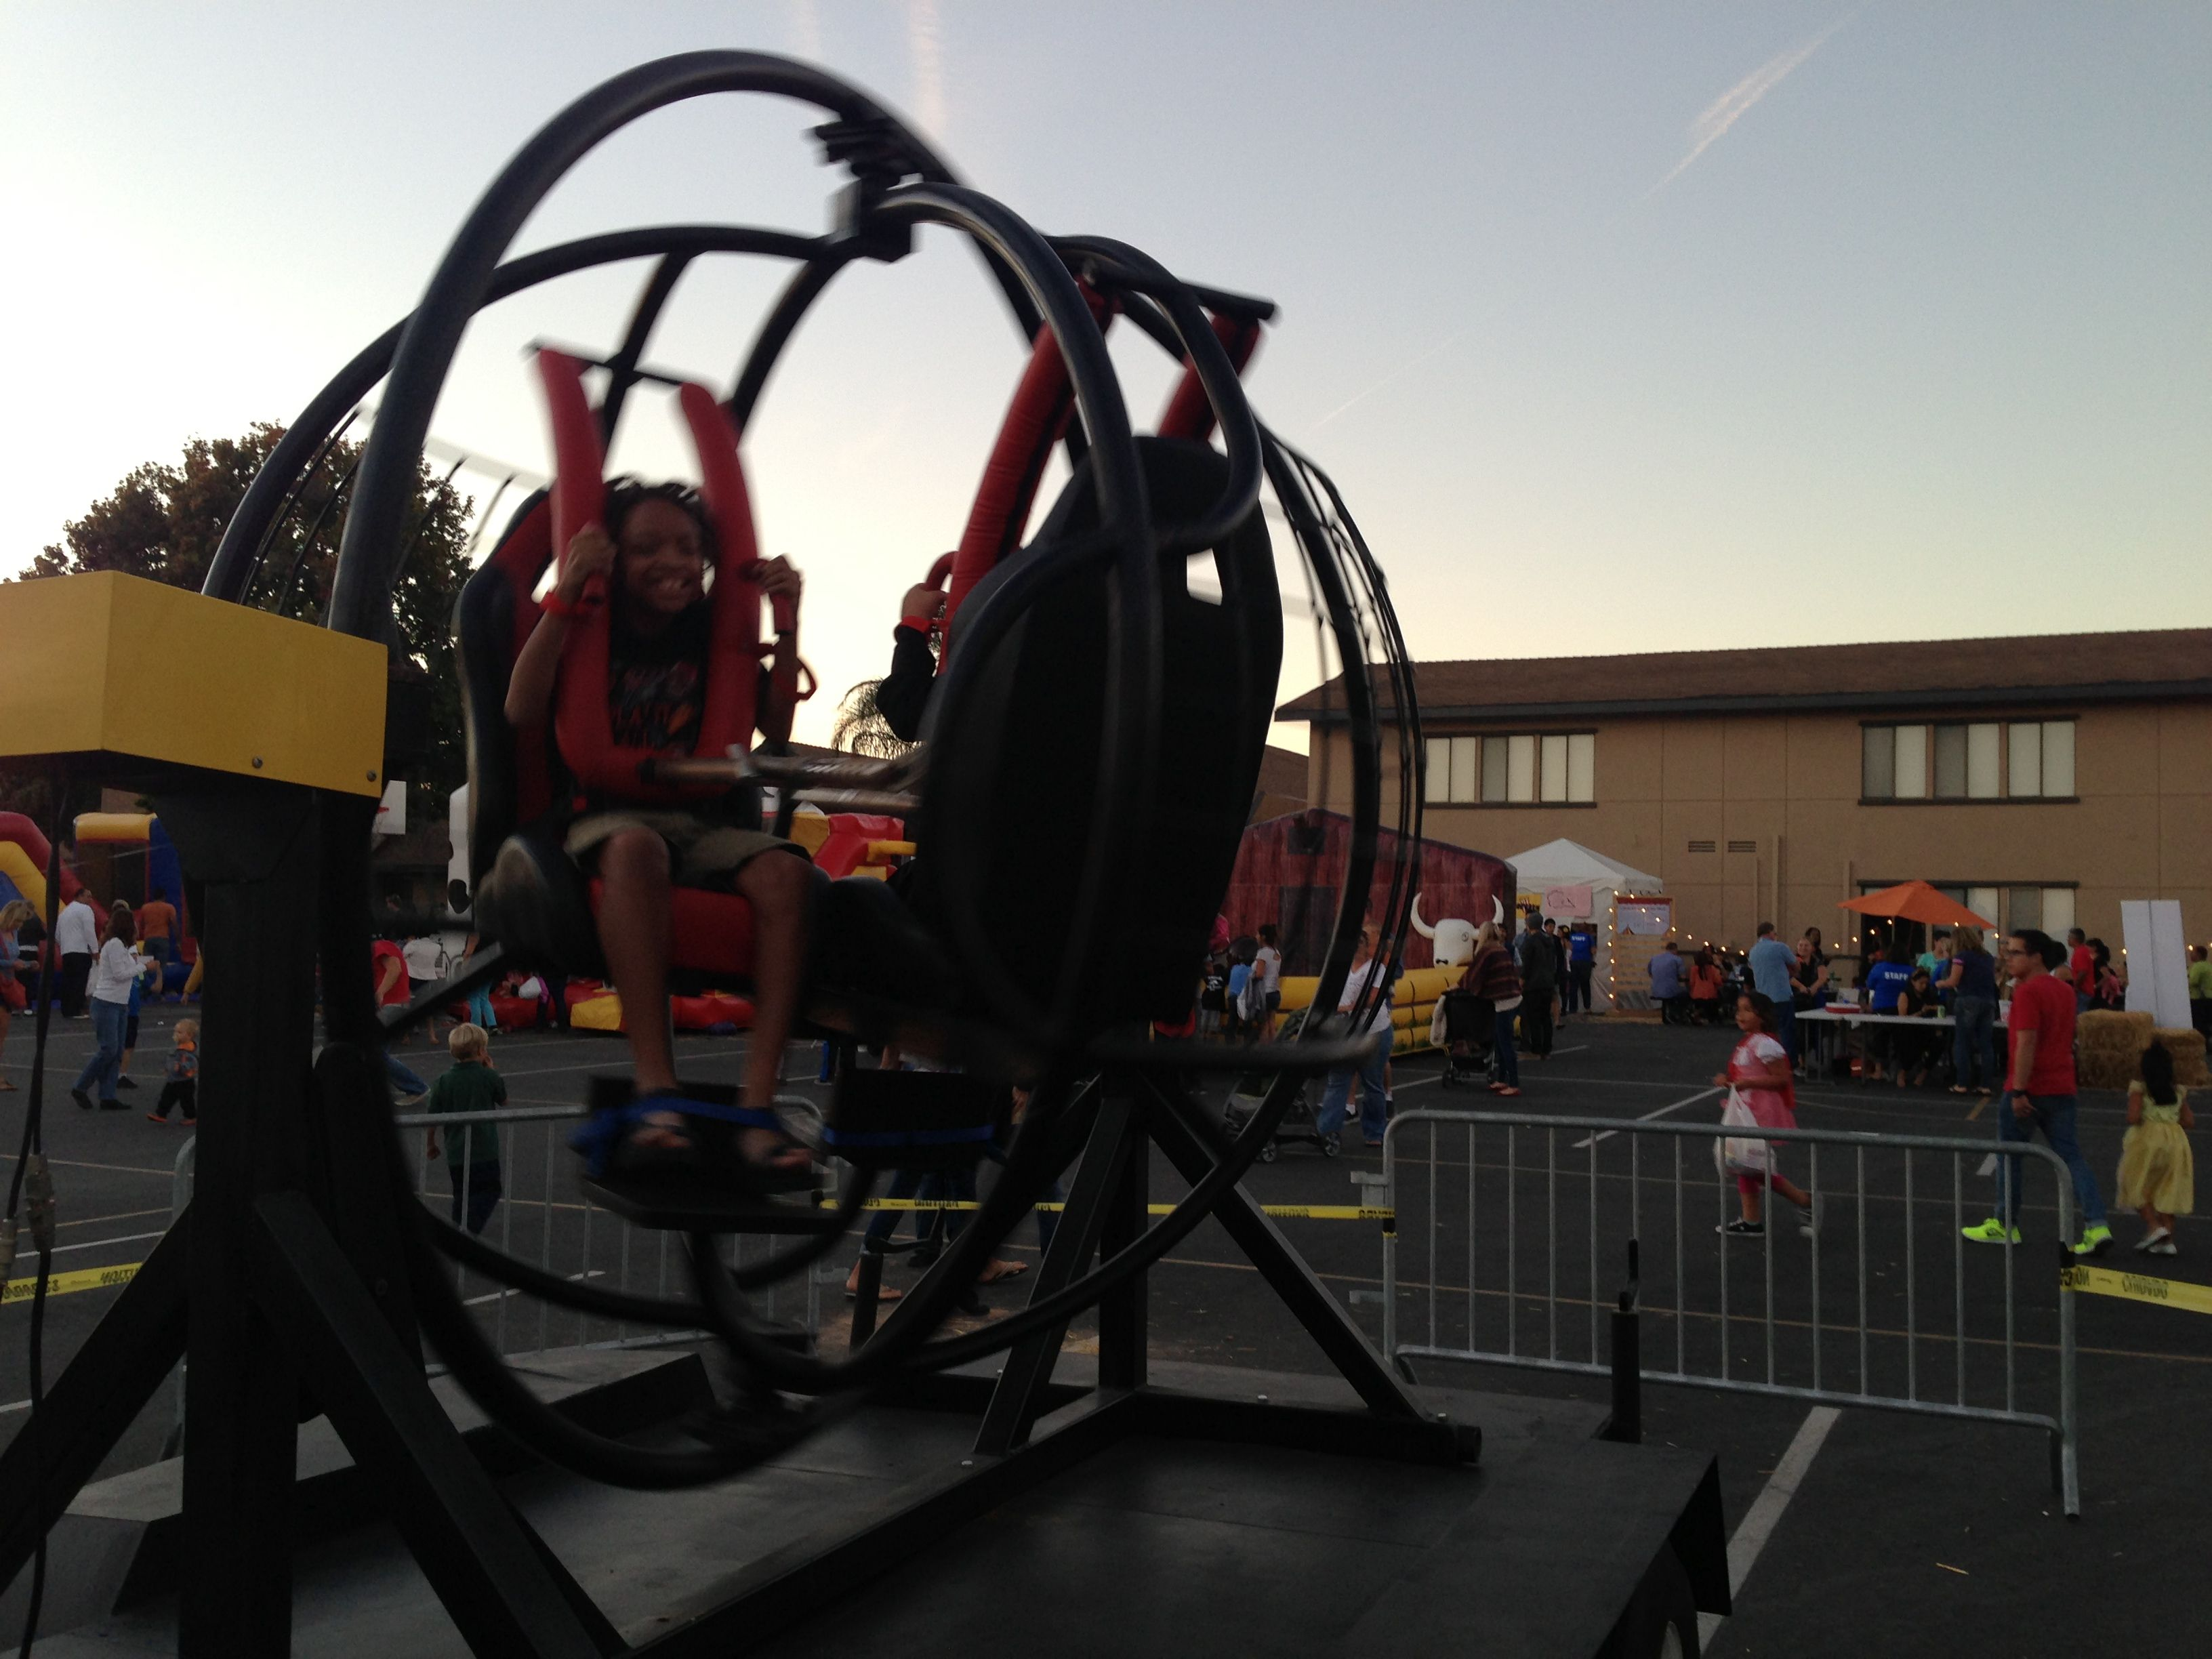 Human gyroscope ride rental available in so cal a unique